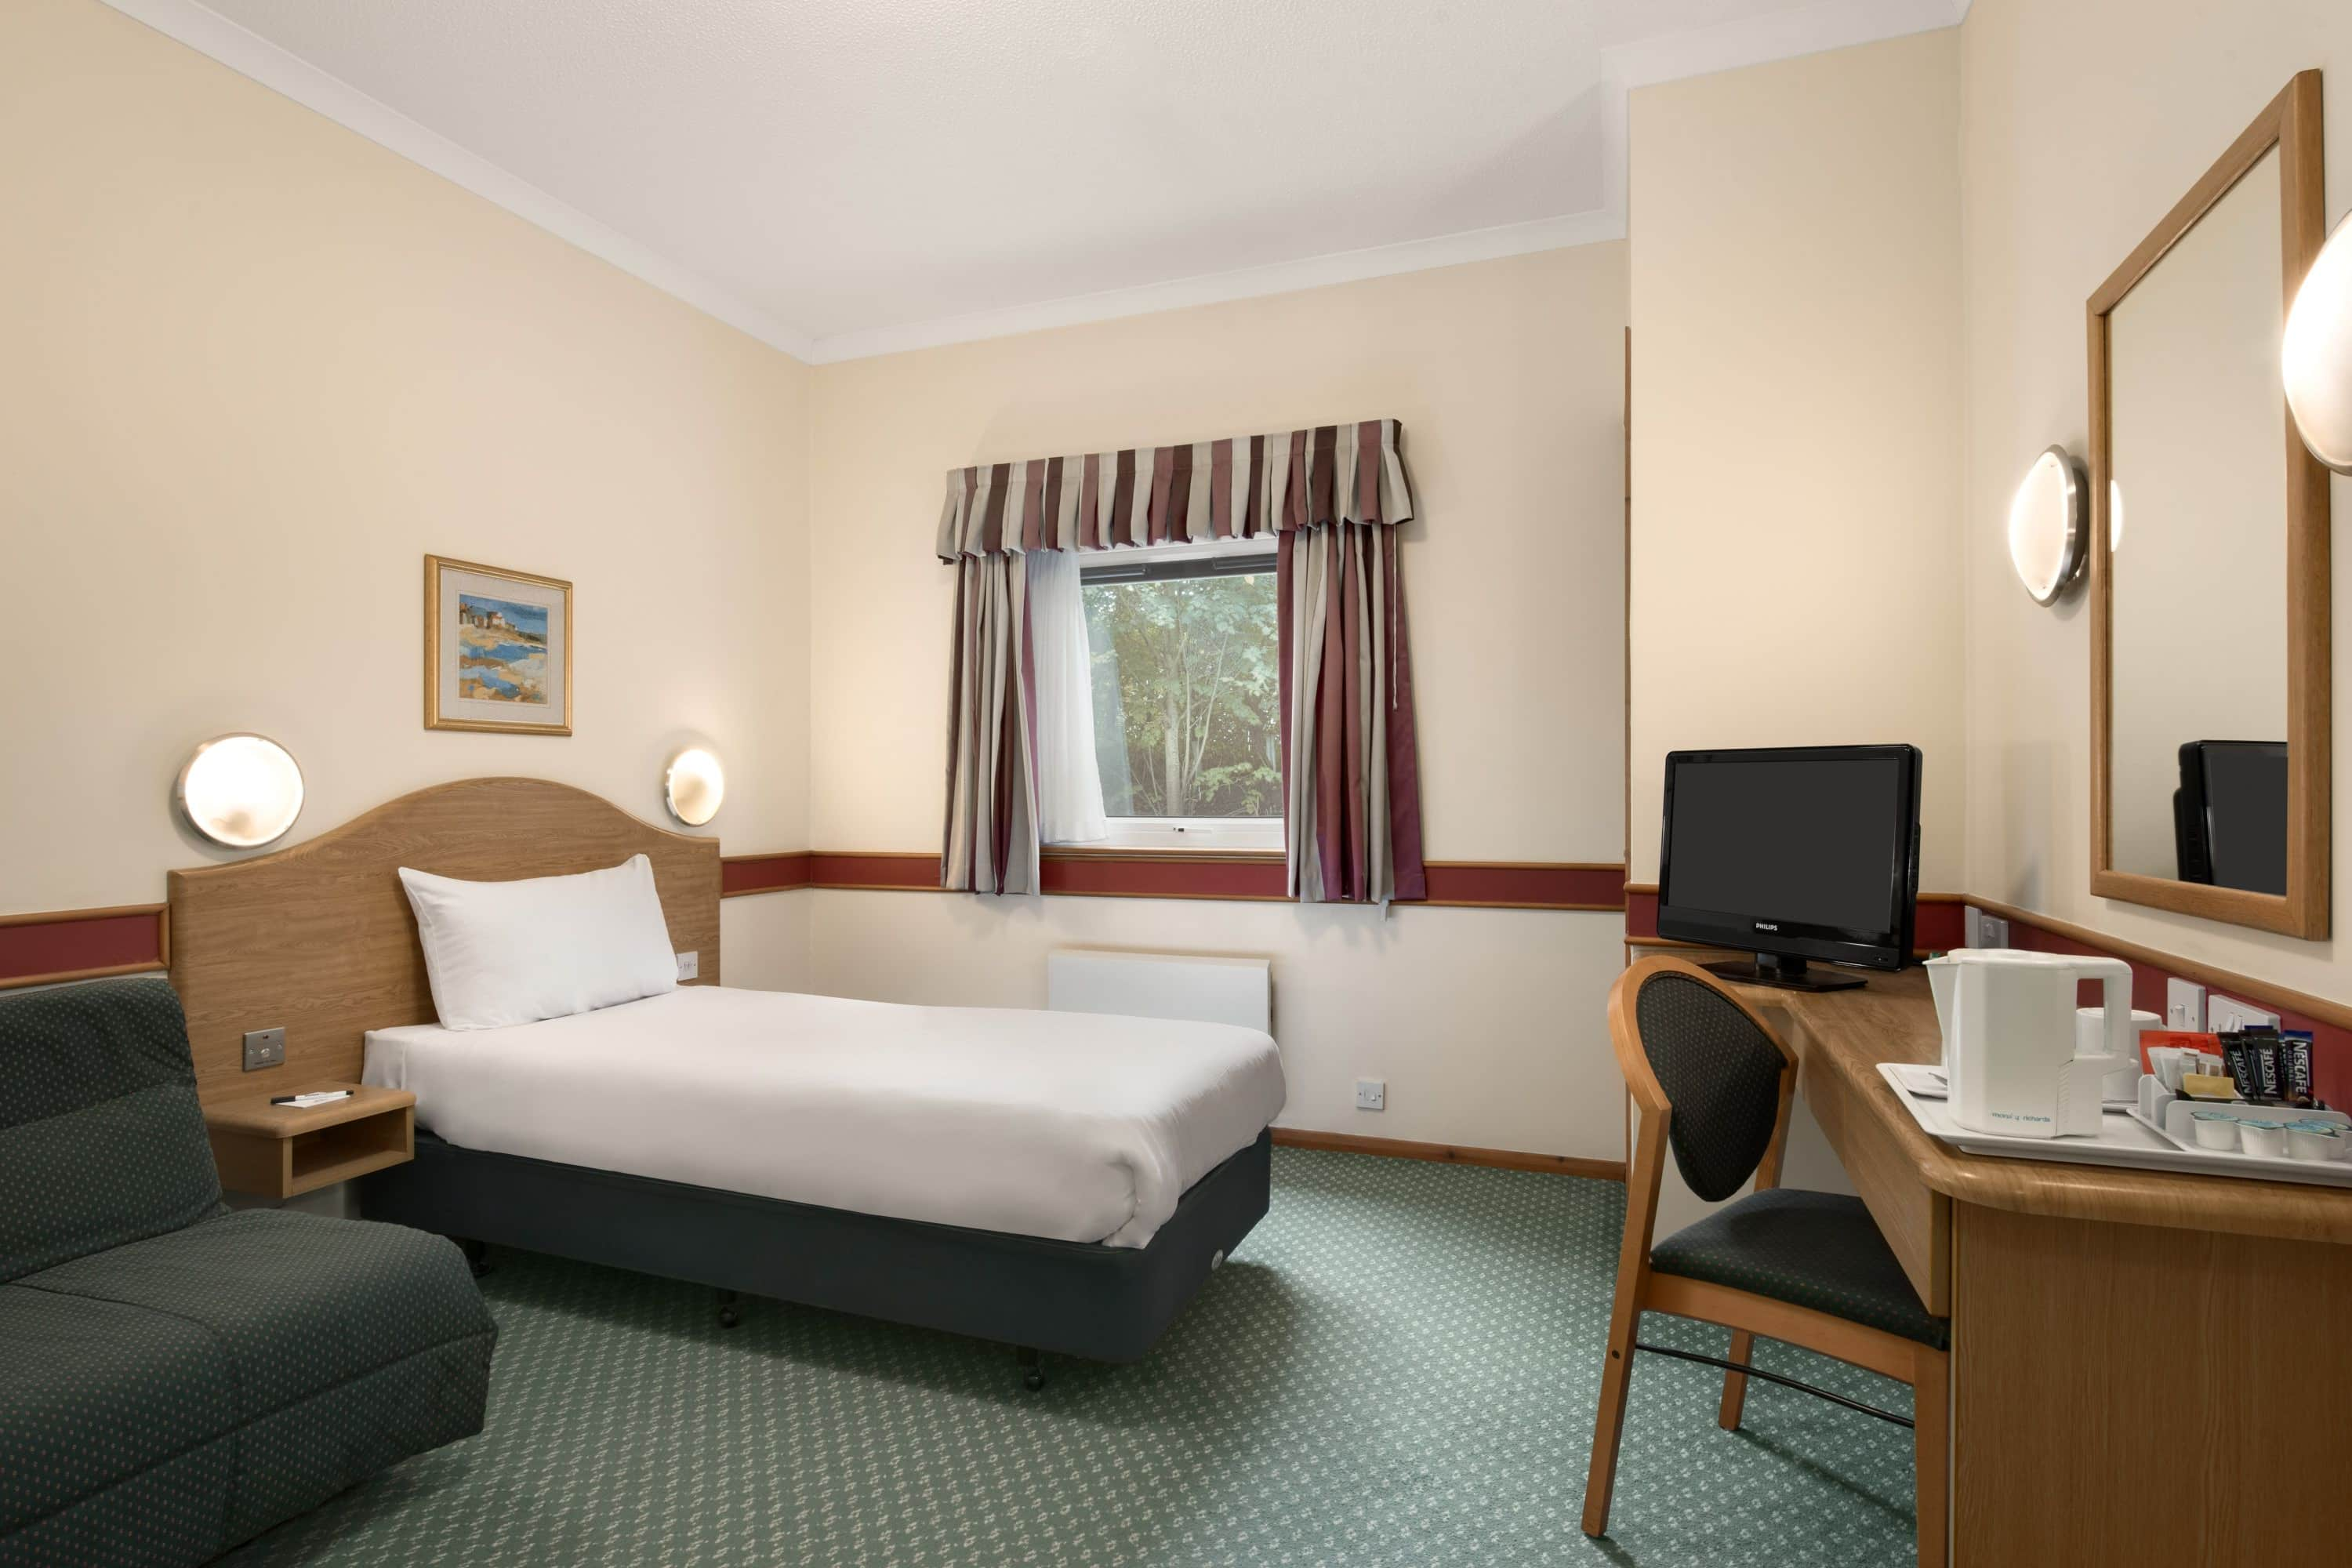 Guest room at the Days Inn Donington A50 in Derby, Other than US/Canada